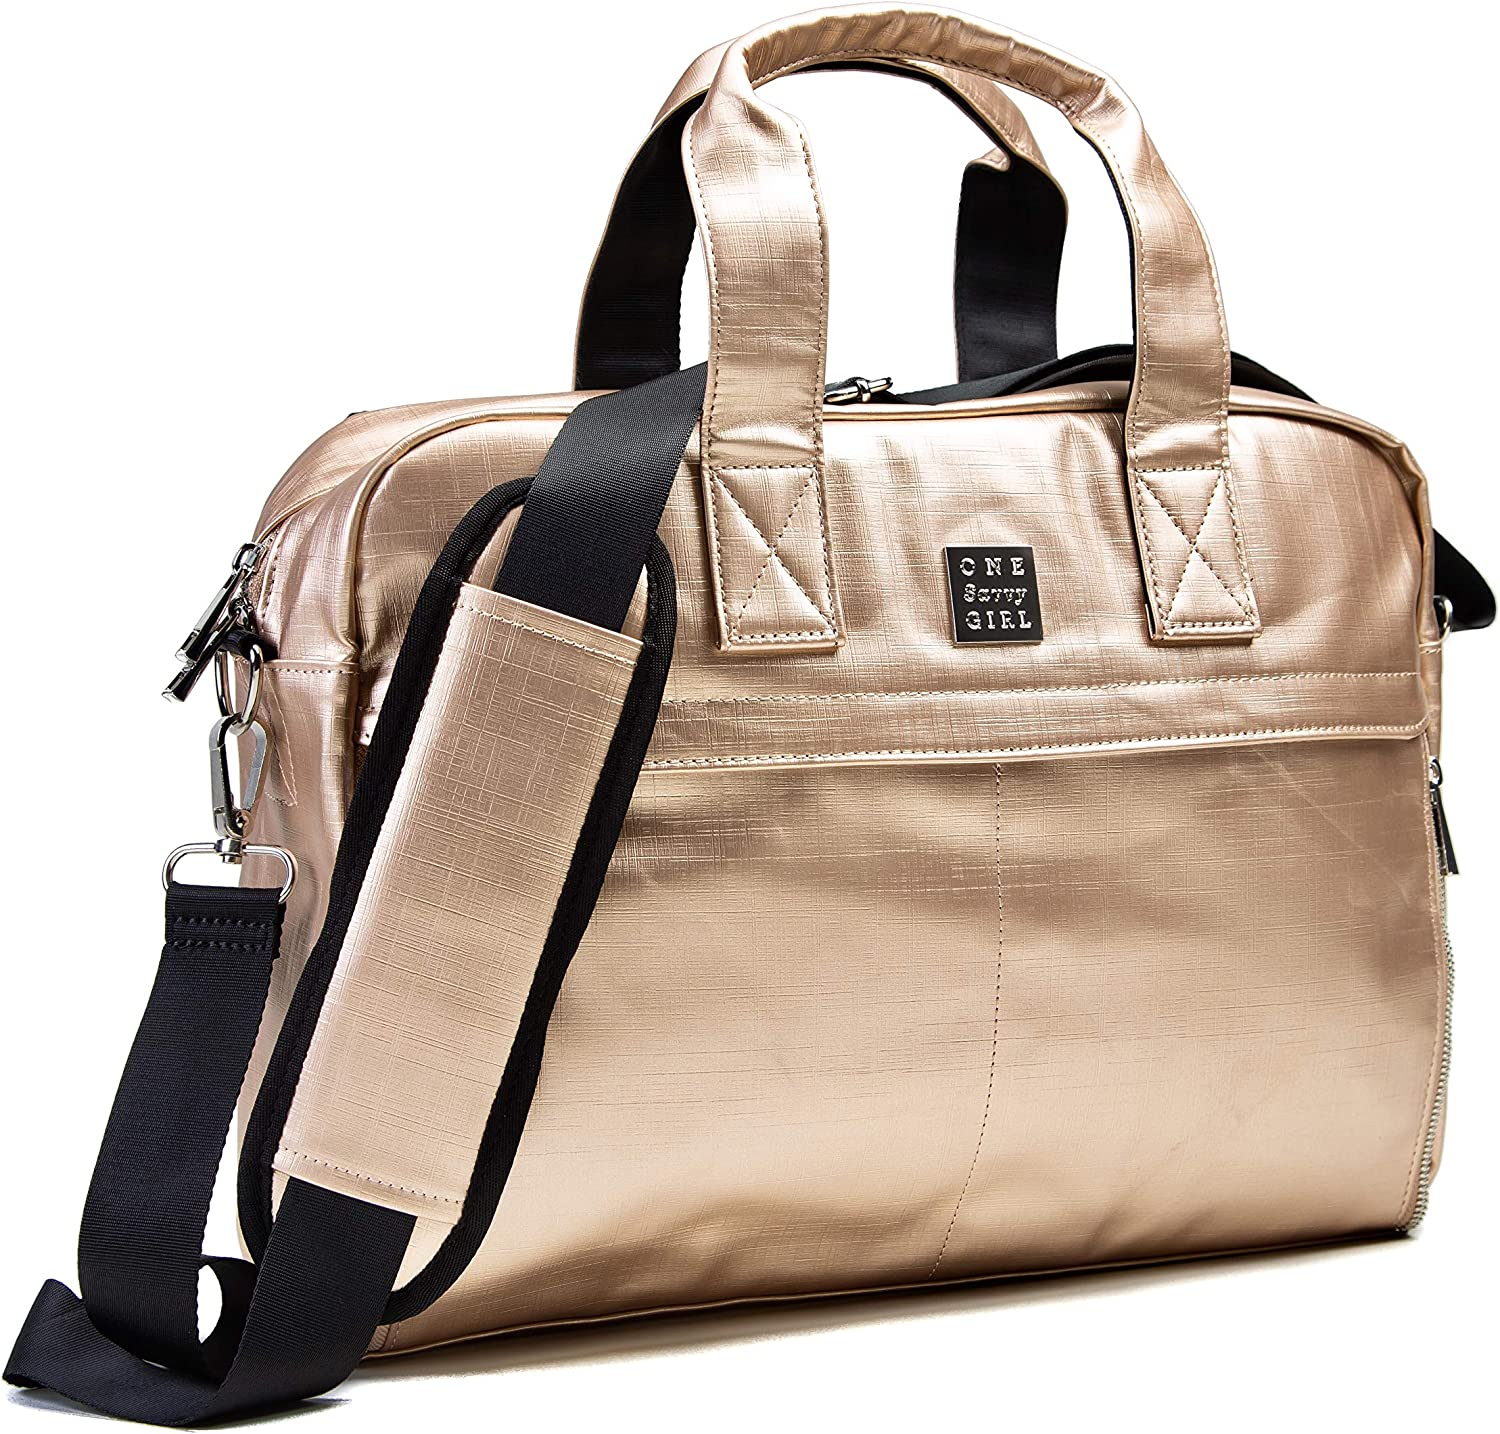 Laptop Backpack for Women - Stylish and Fashionable Rose Gold Computer and Messenger Bag Perfect for Work, Travel & Adventure